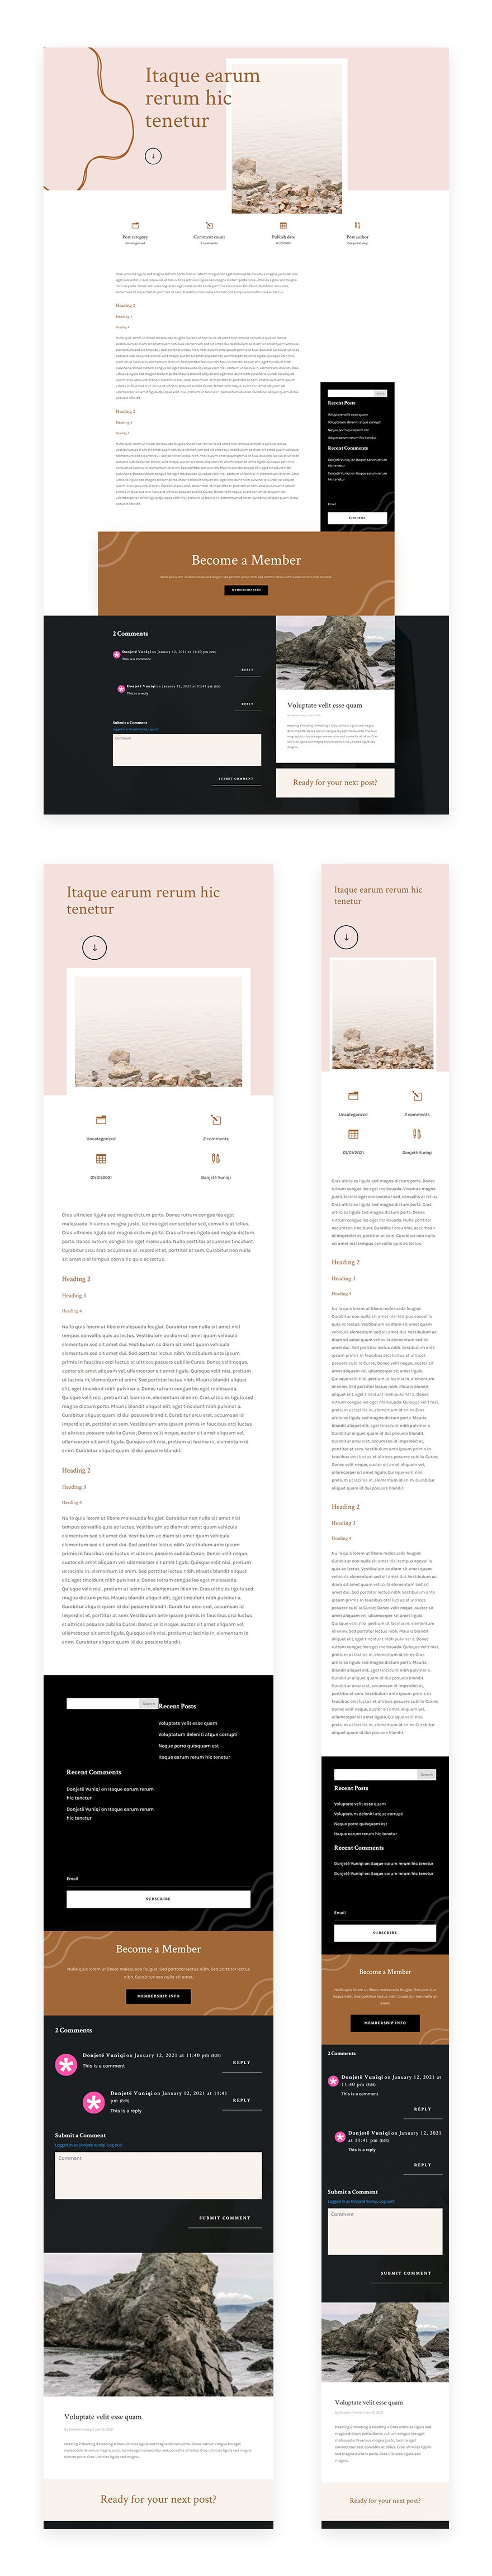 download-a-free-blog-post-template-for-divis-meditation-center-layout-pack Download a FREE Blog Post Template for Divi's Meditation Center Layout Pack